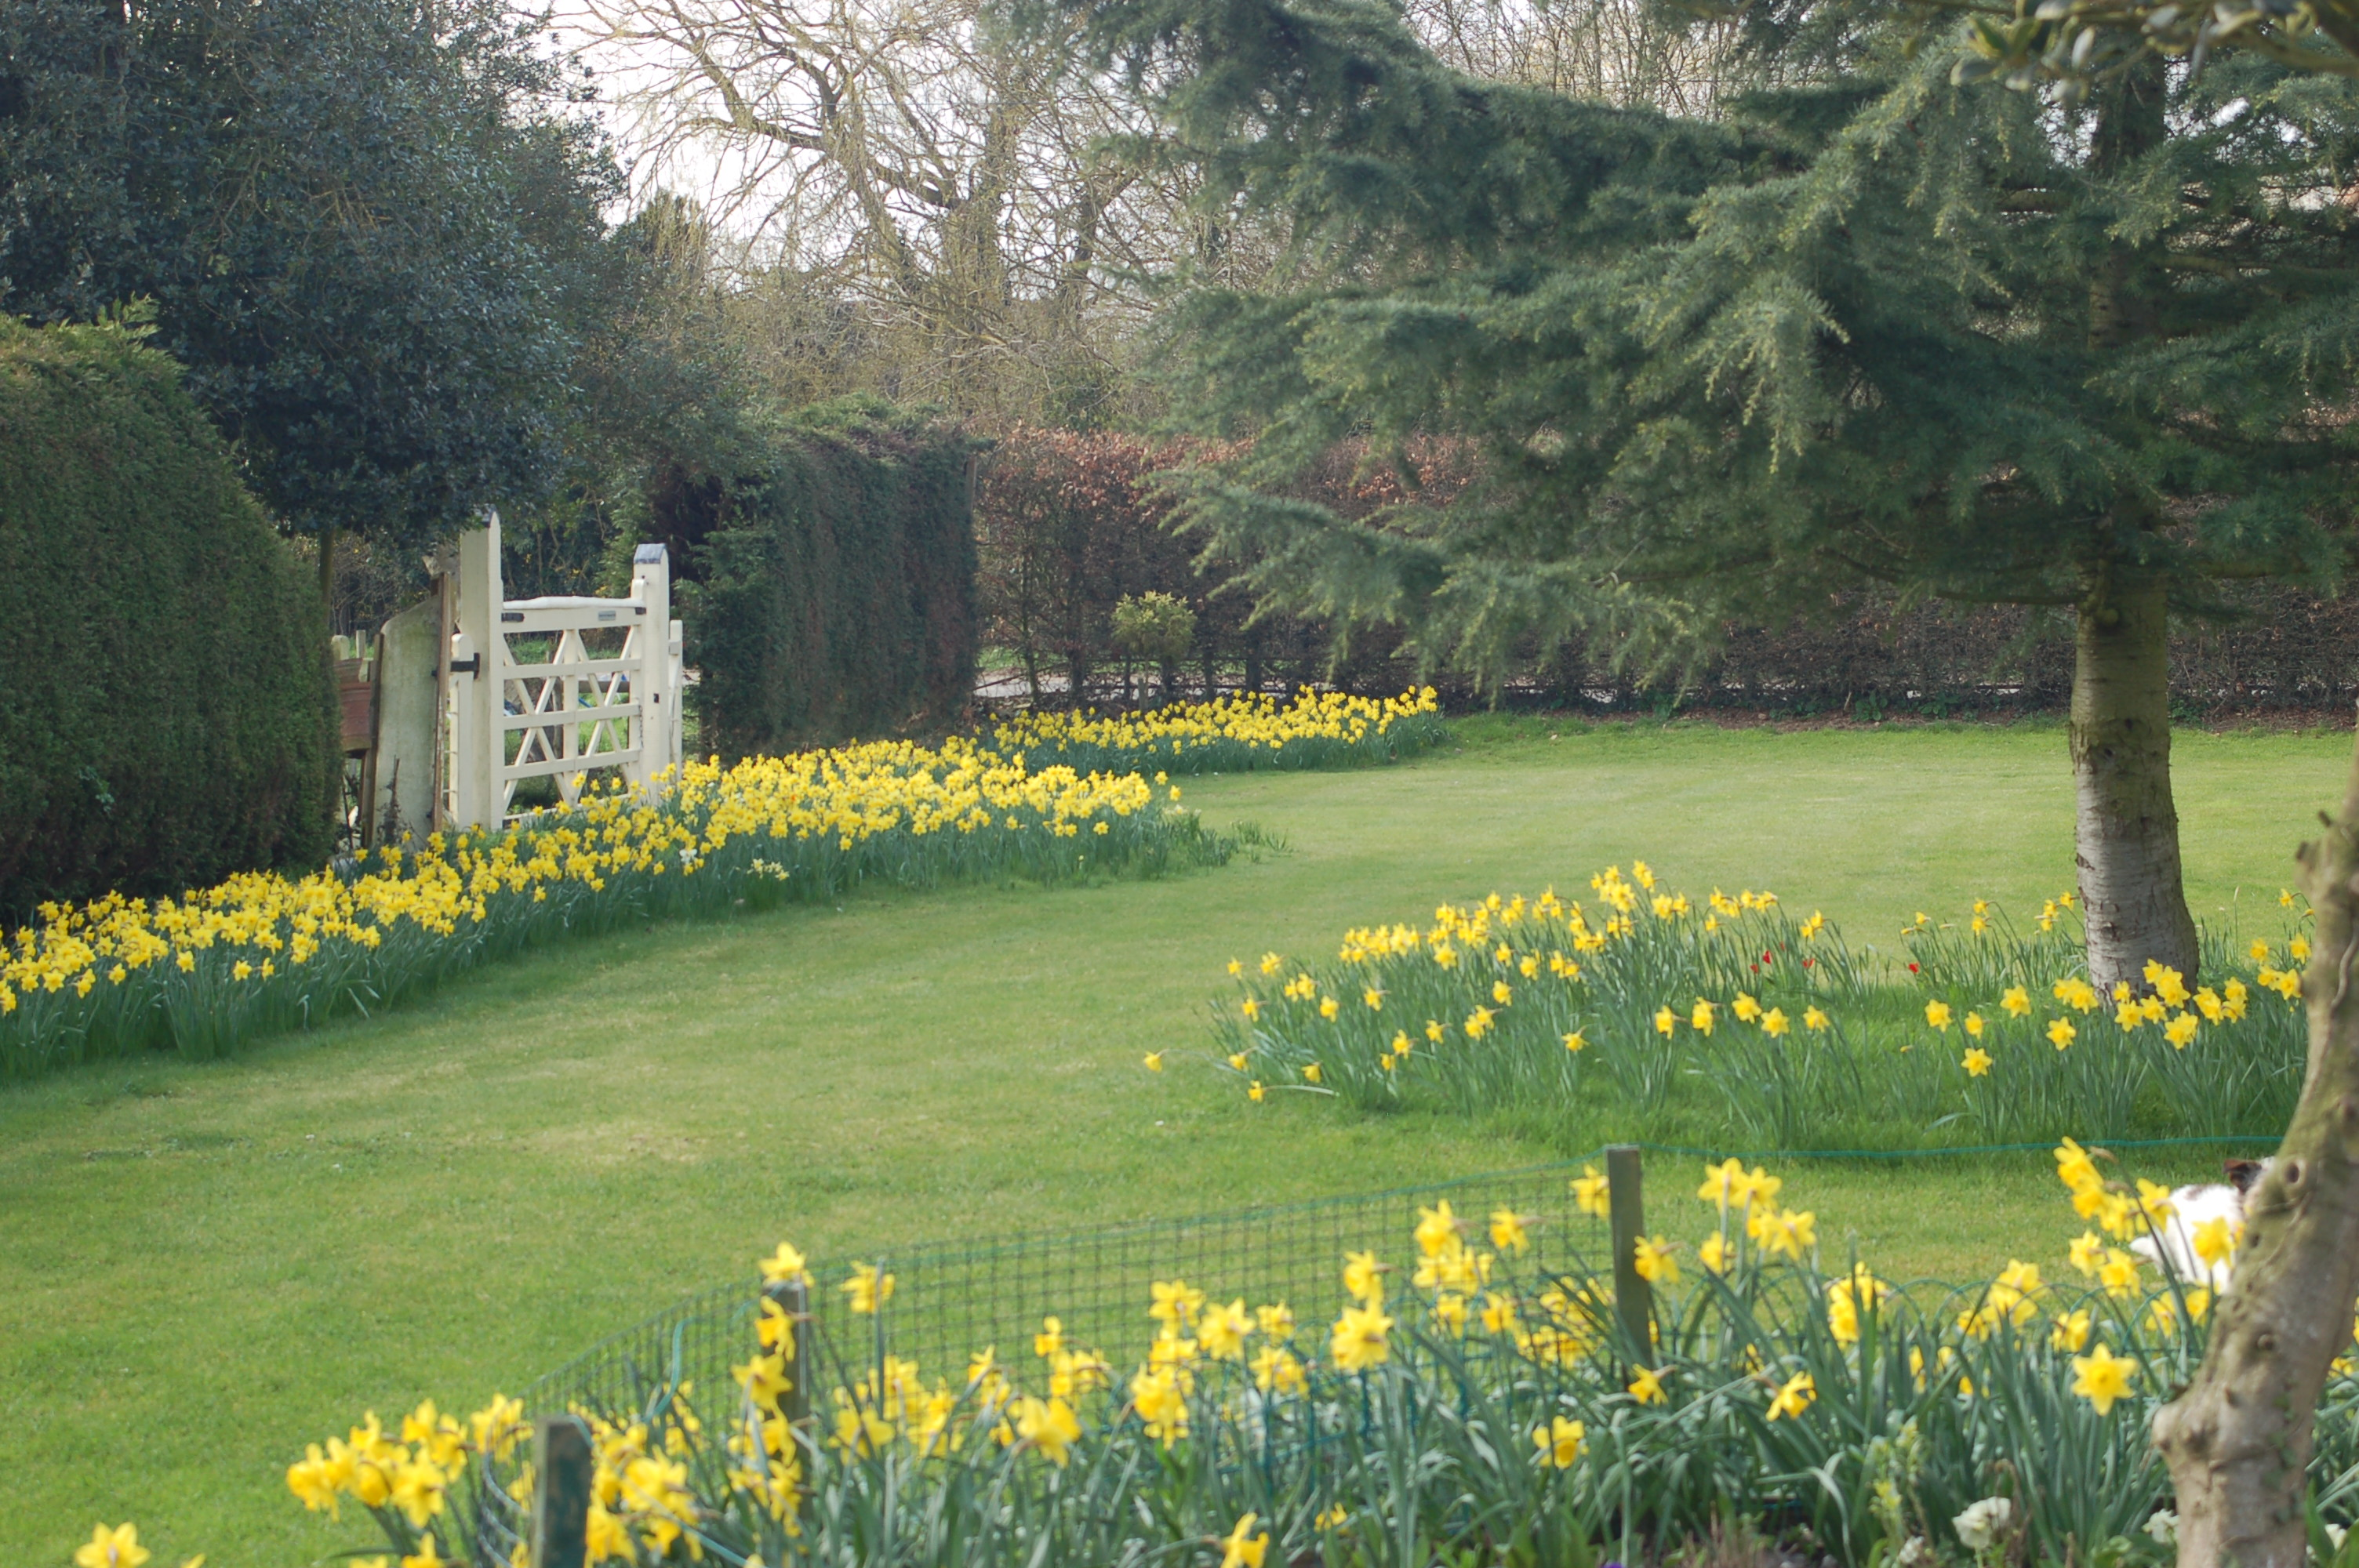 Daffodils in the spring garden